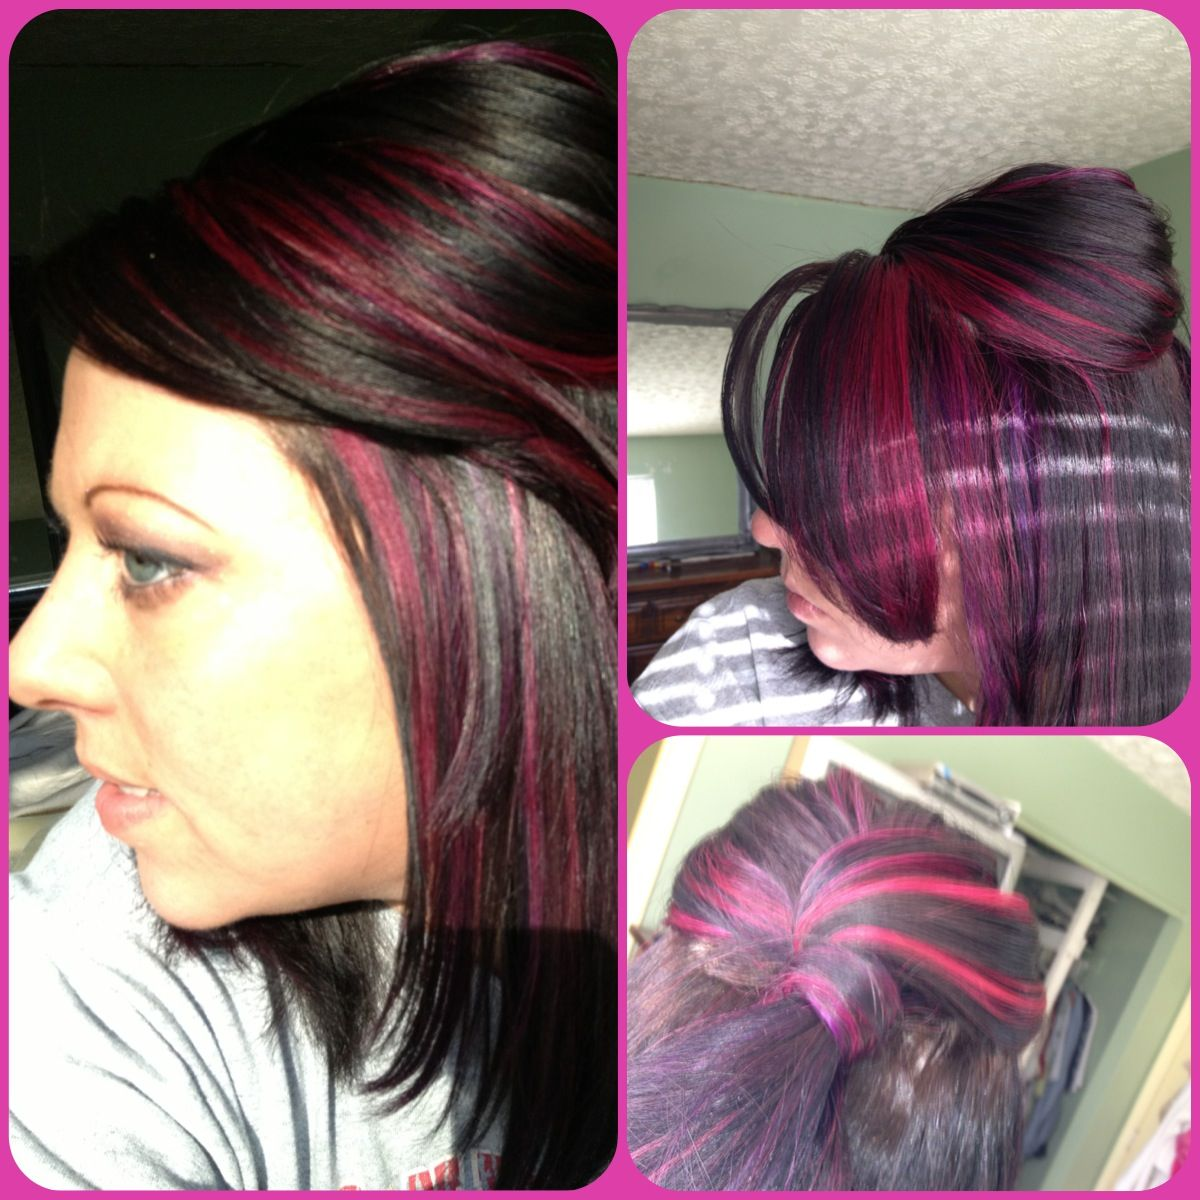 1000 images about hair color fun on pinterest - Pravana Wild Orchid Hair Color